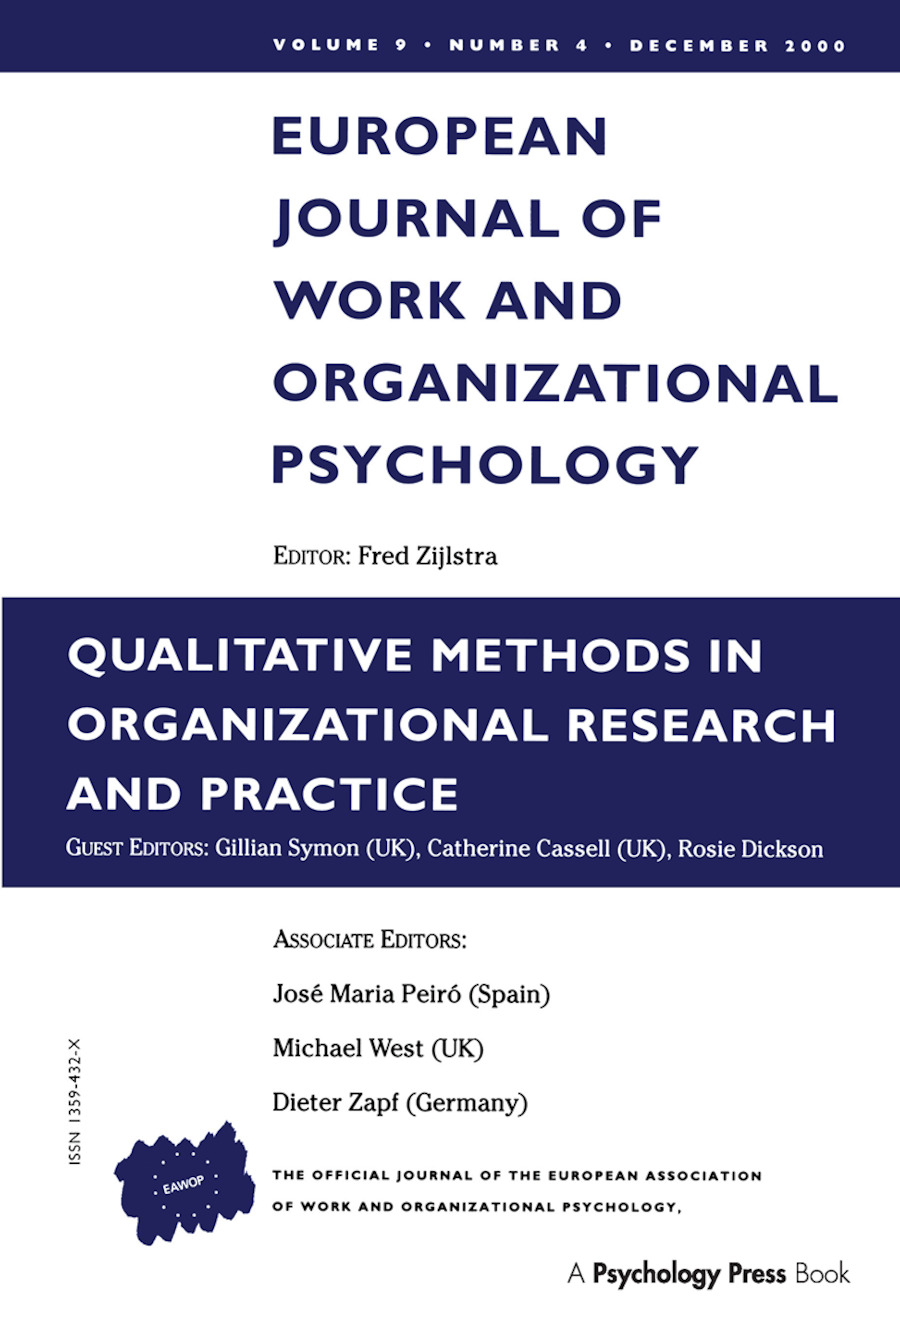 Qualitative Methods in Organizational Research and Practice: A Special Issue of the European Journal of Work and Organizational Psychology (Paperback) book cover